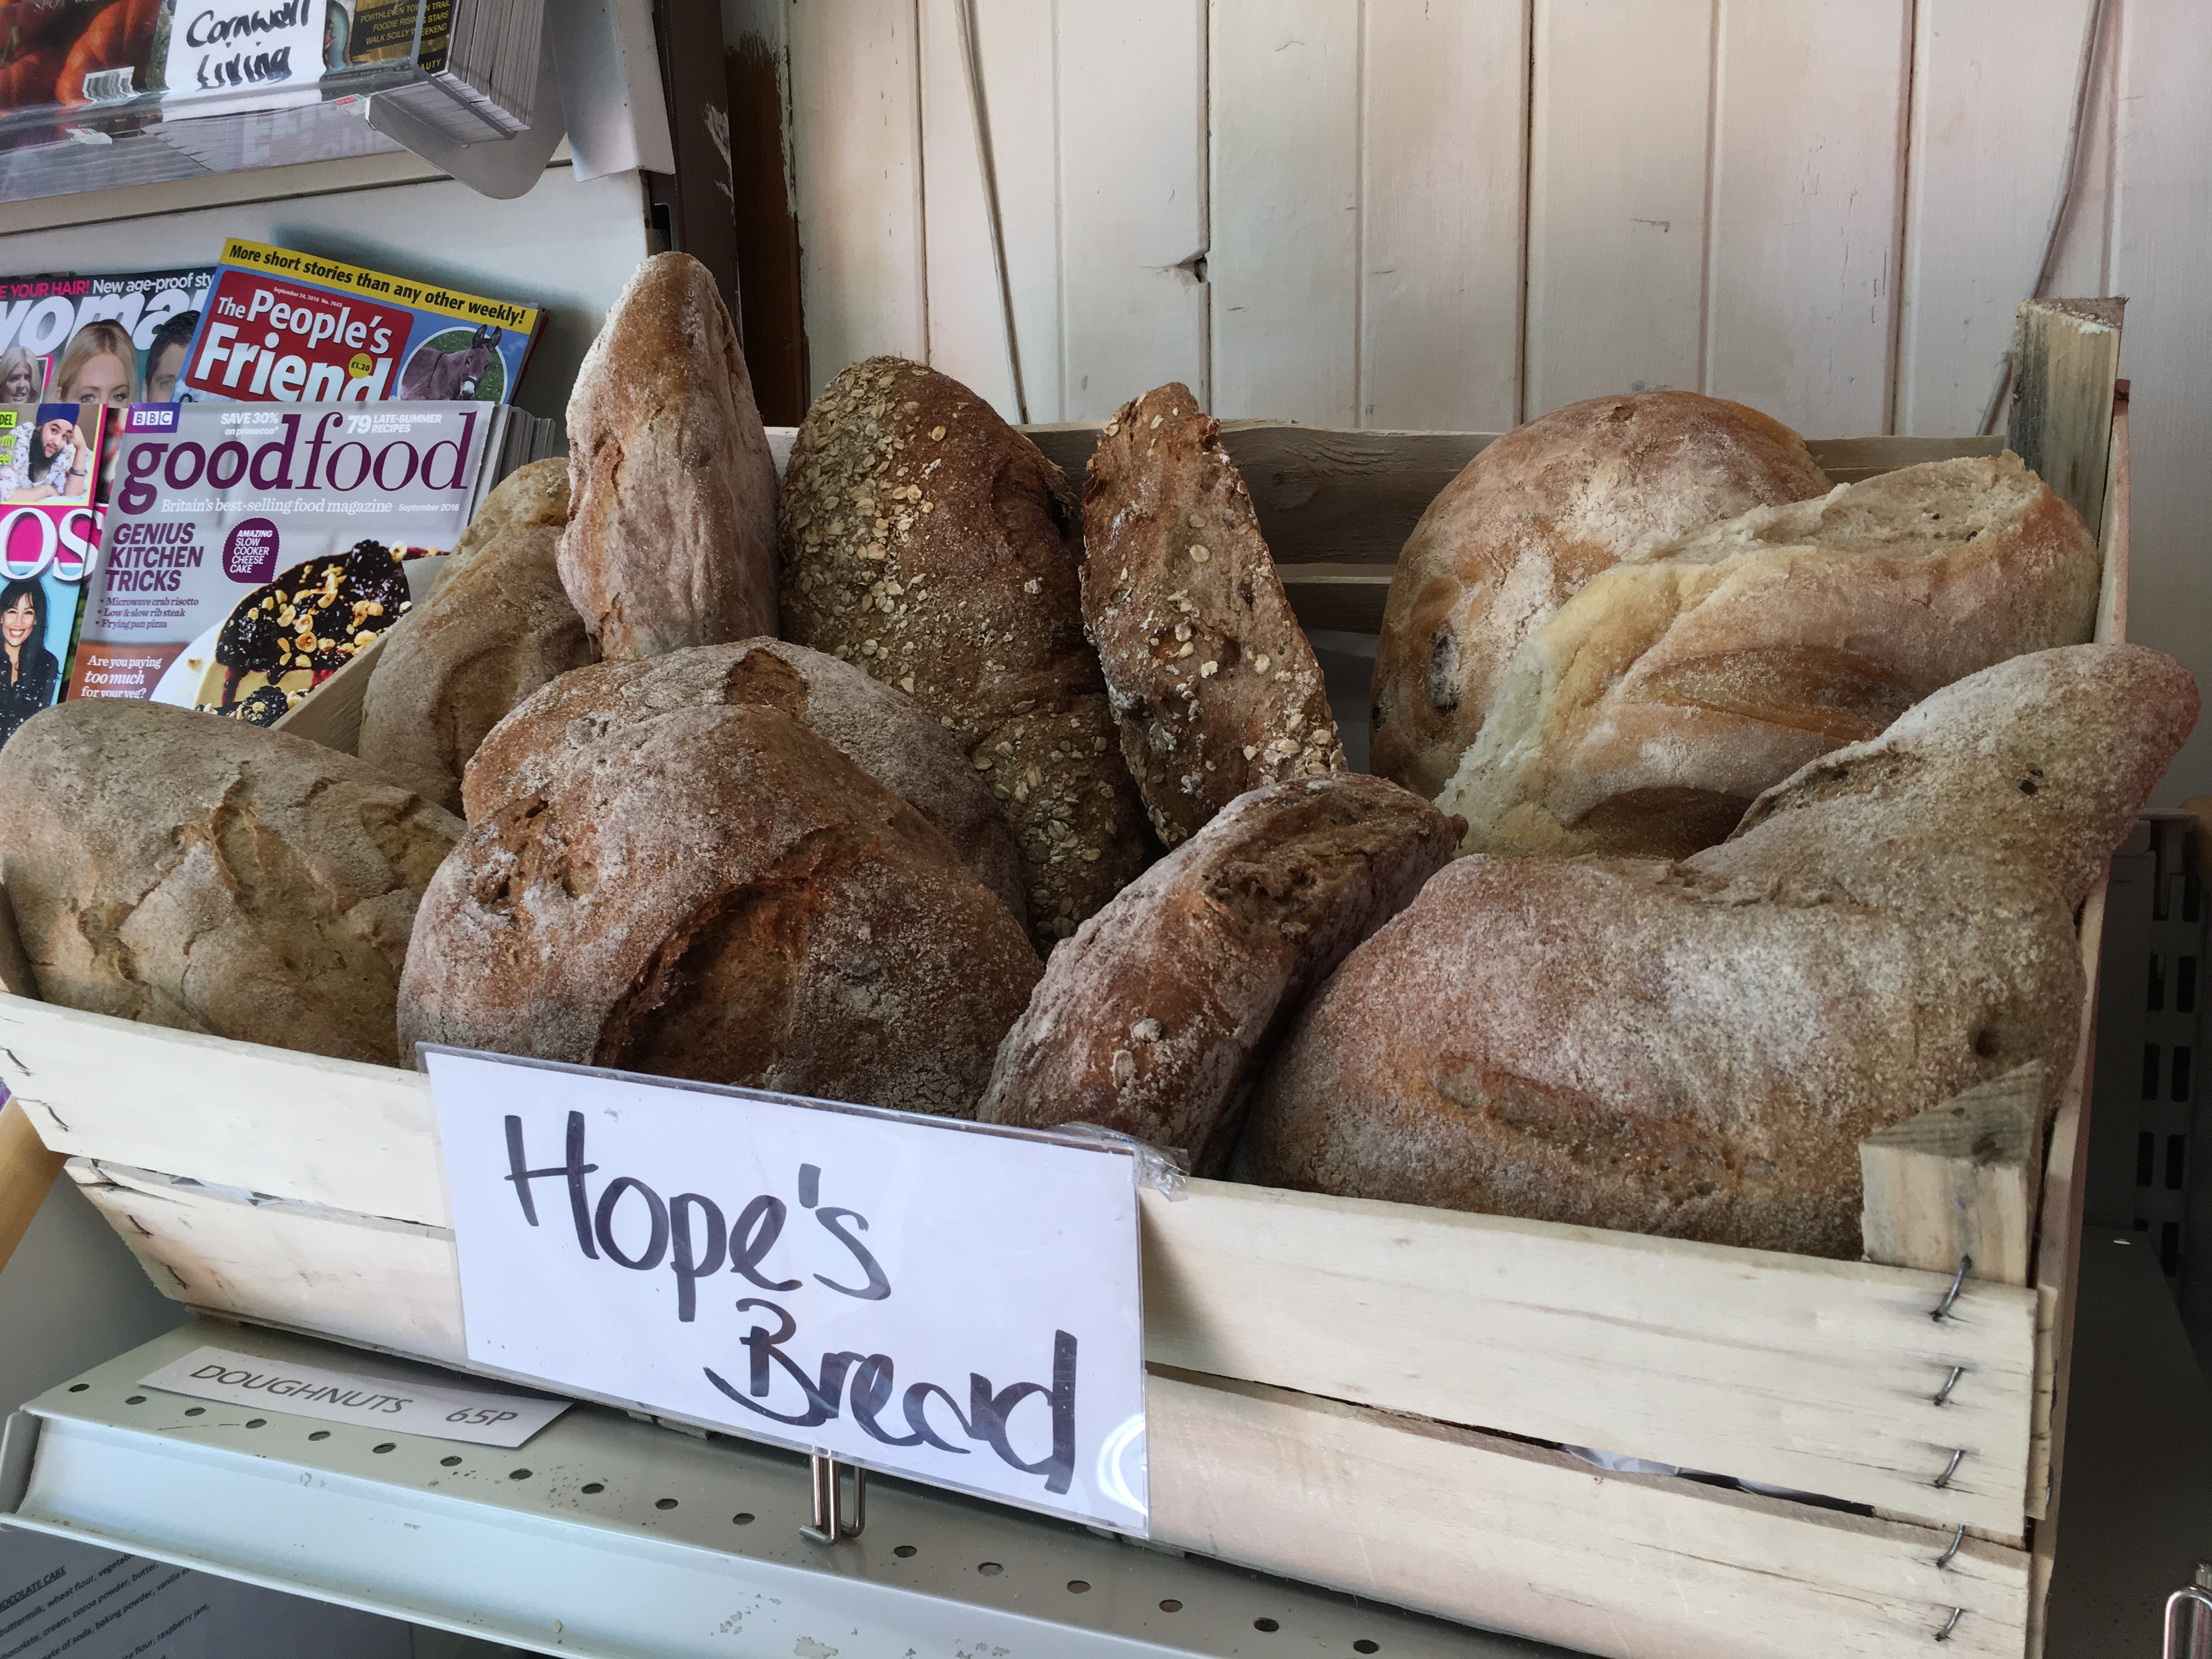 Hope's Bread